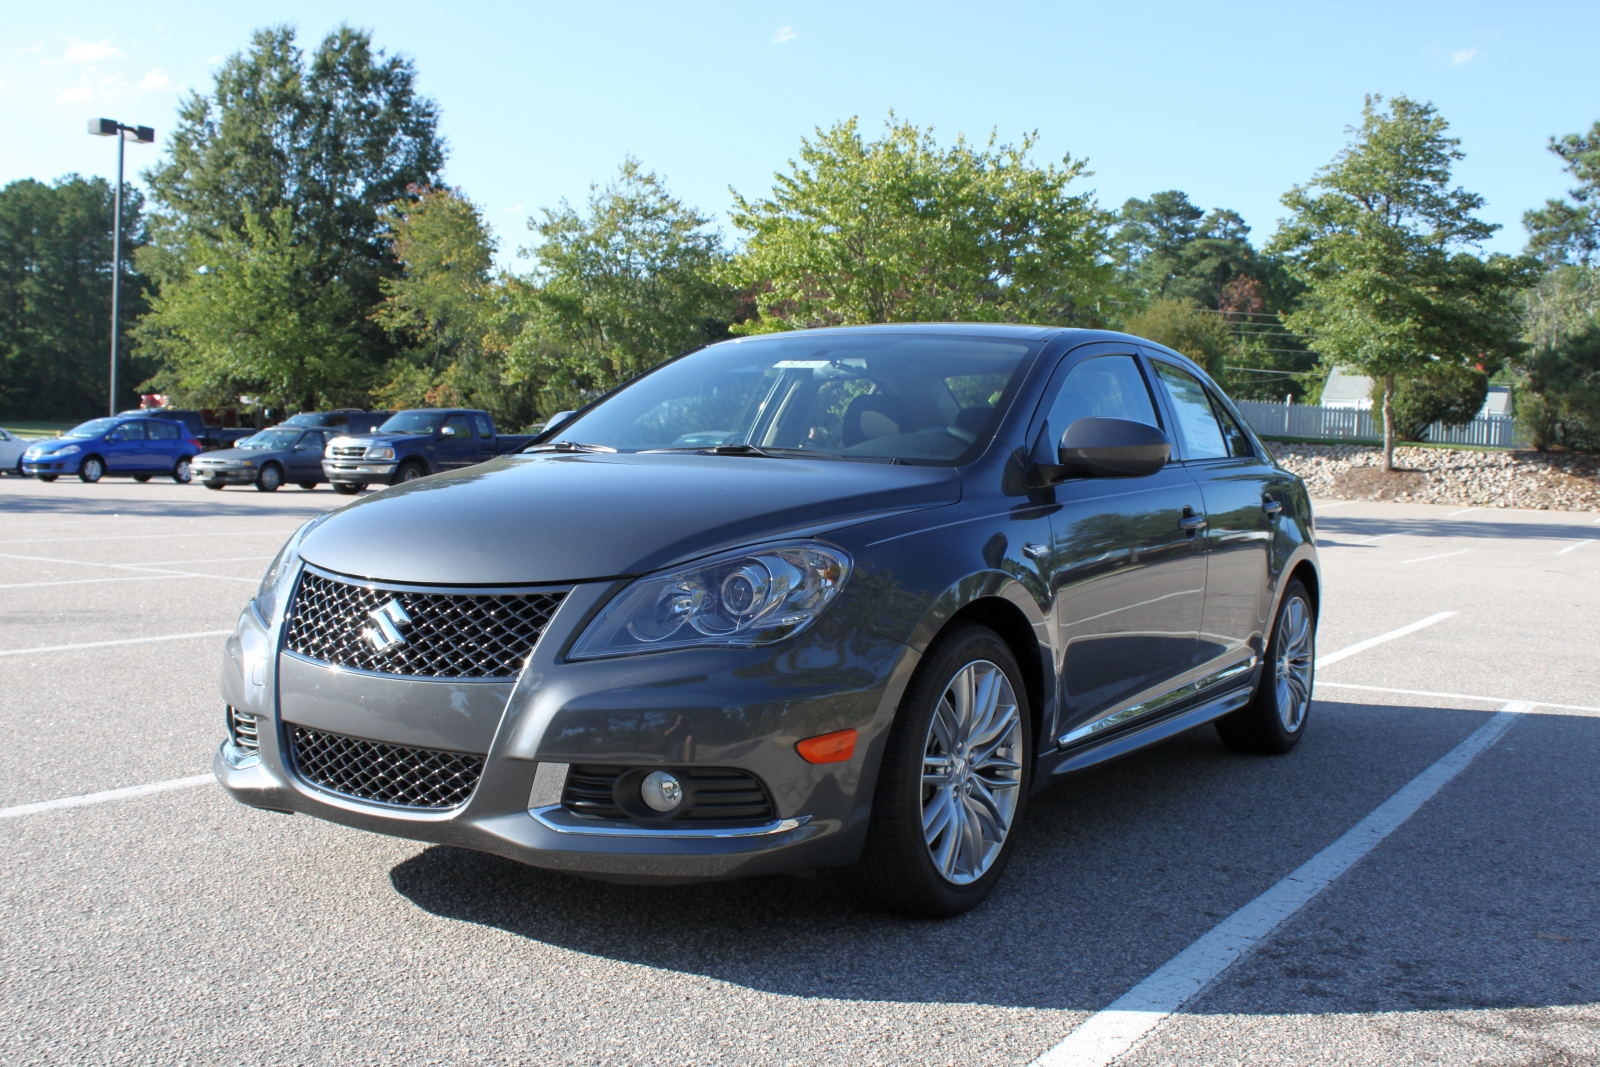 2012 suzuki kizashi sport gts test drive. Black Bedroom Furniture Sets. Home Design Ideas